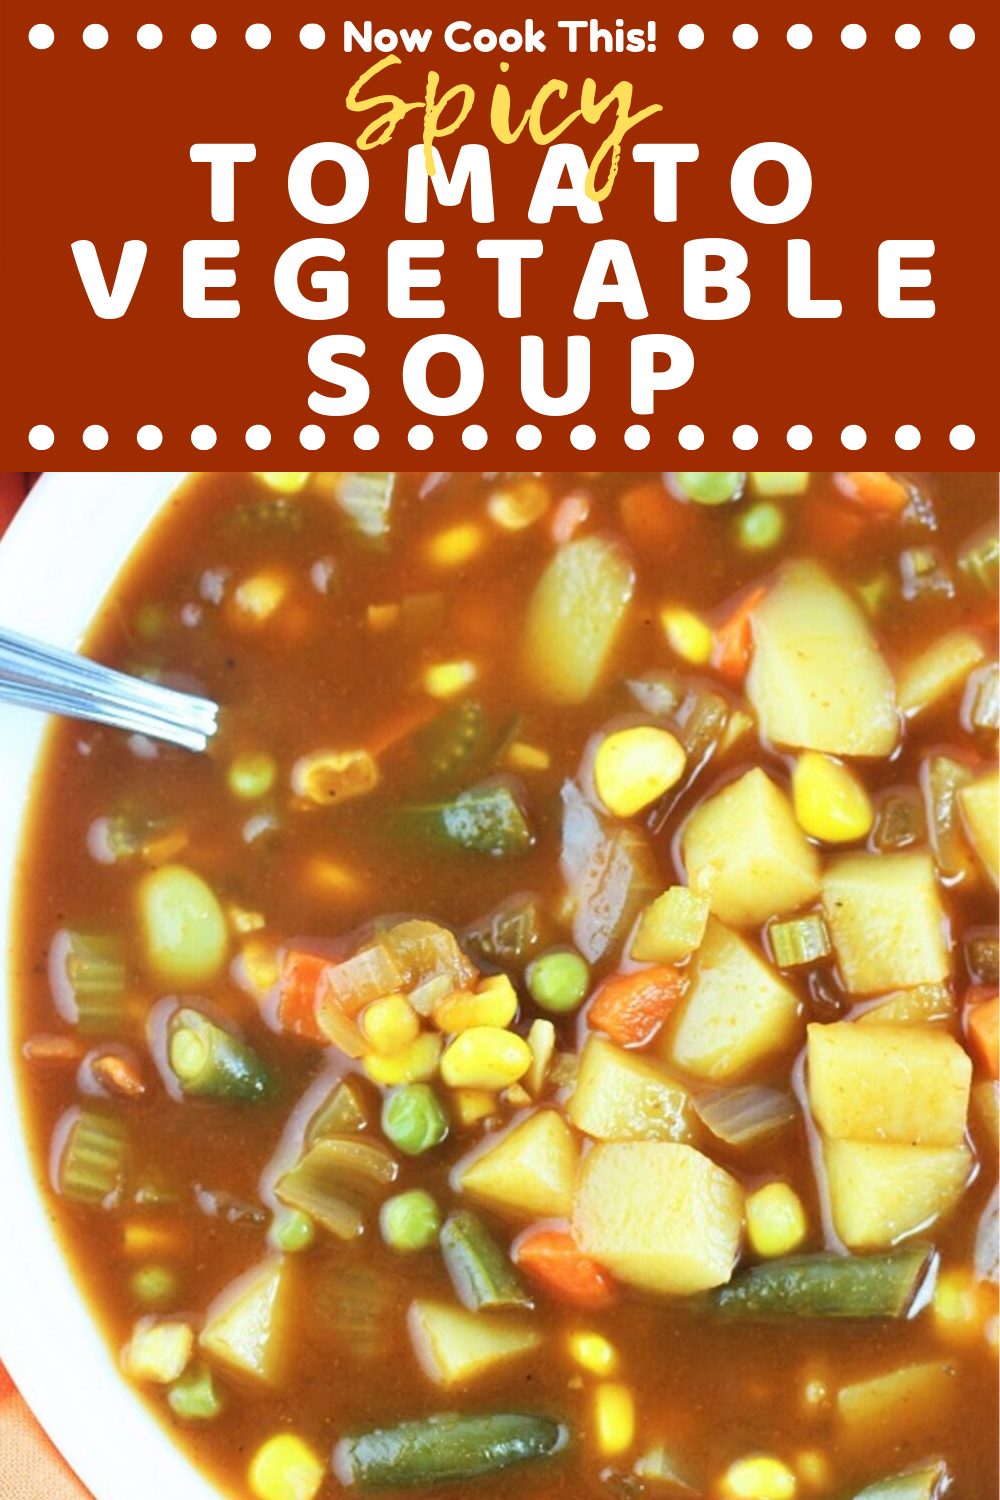 Spicy Tomato Vegetable Soup is quick and easy to make and has tons of mixed vegetables in a super flavorful beefy tomatoy broth with a lightly spicy kick Its hearty comfo...